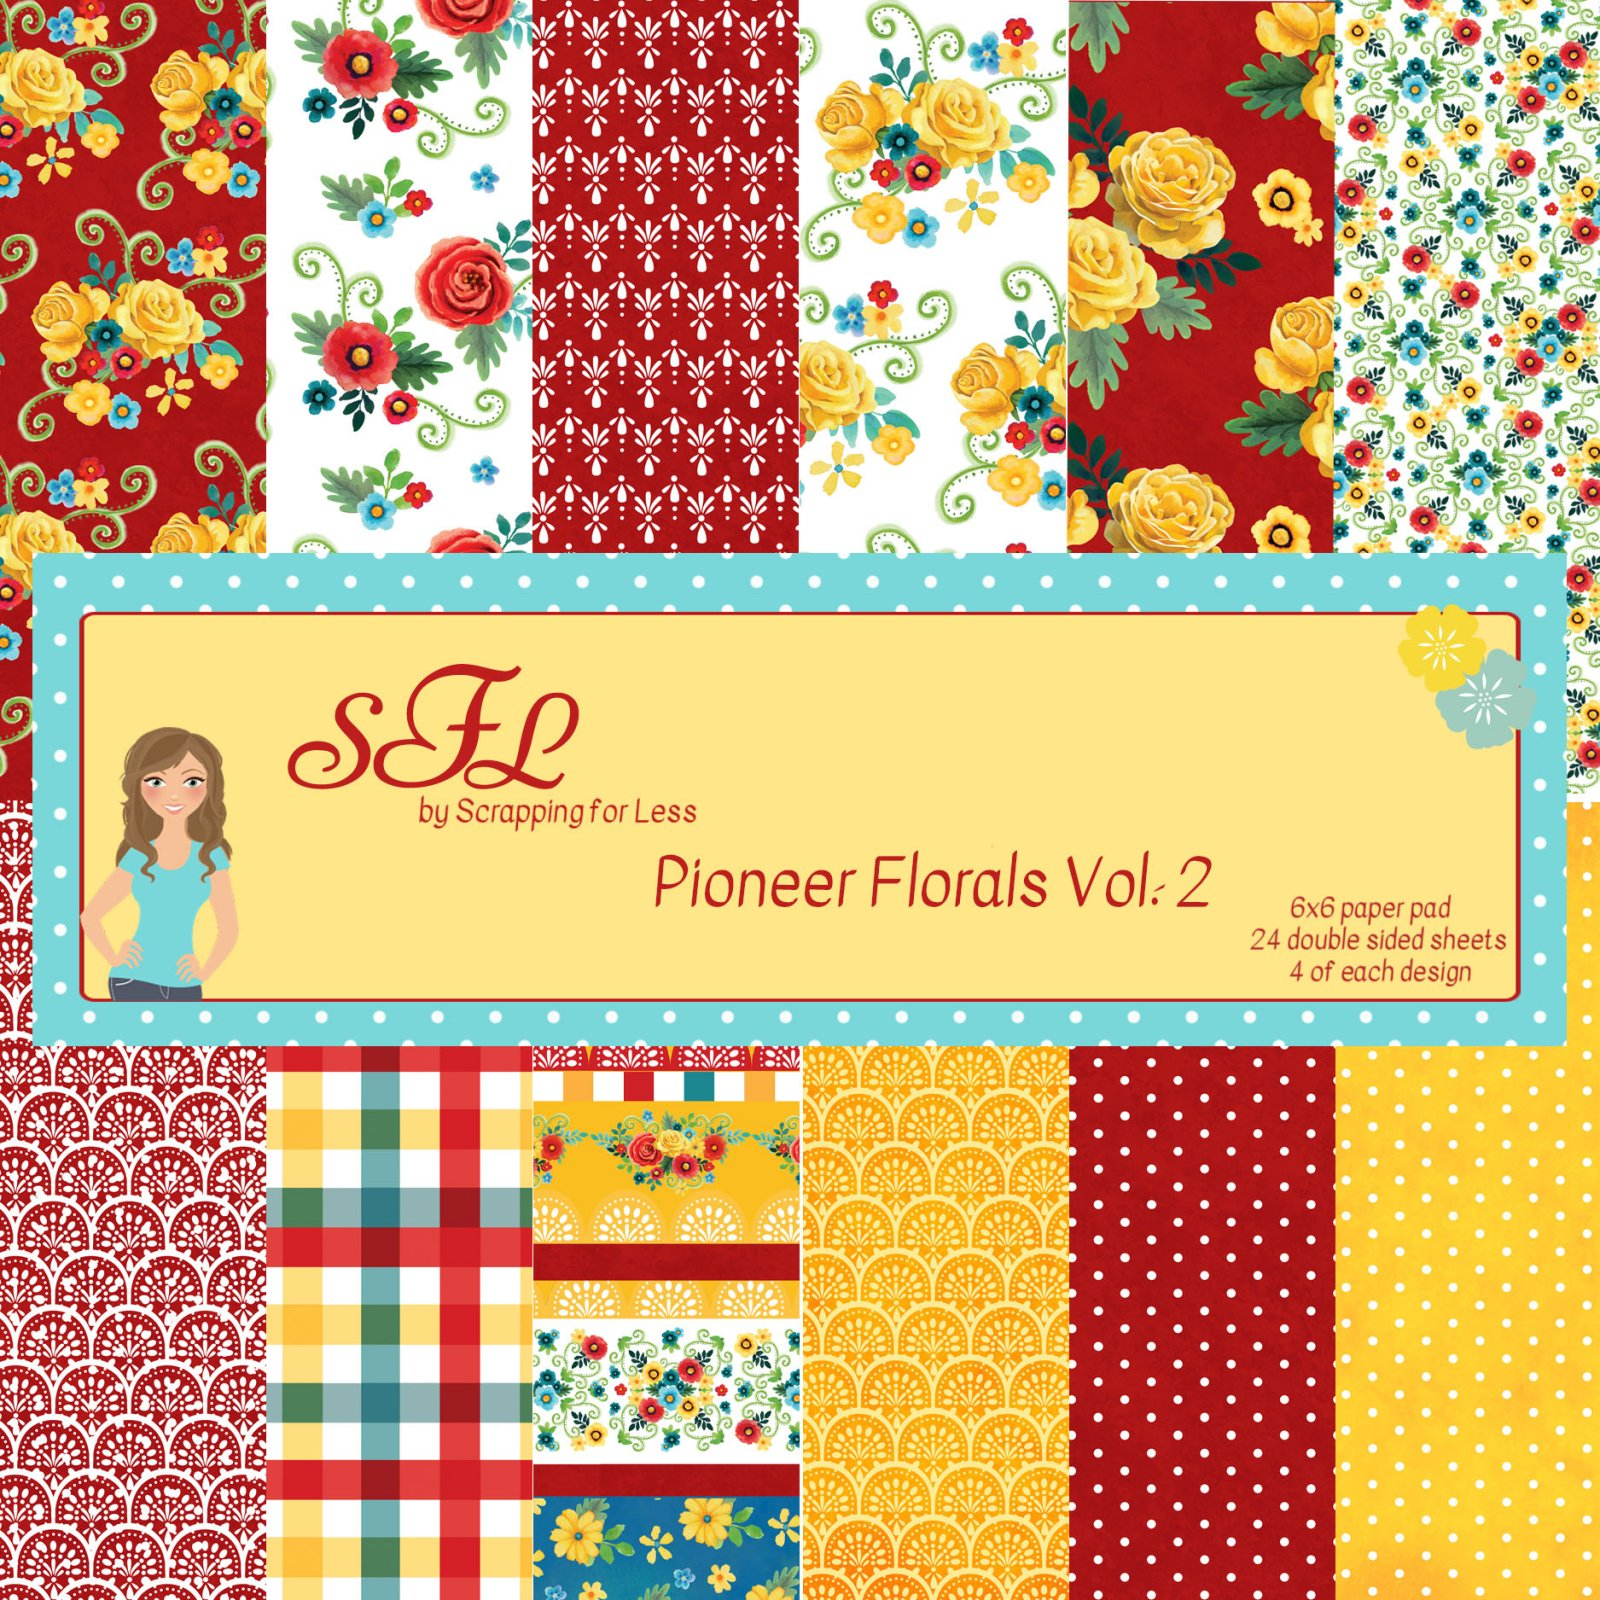 Scrapping for Less Pioneer Florals-Vol. 2 6x6 Paper Pad